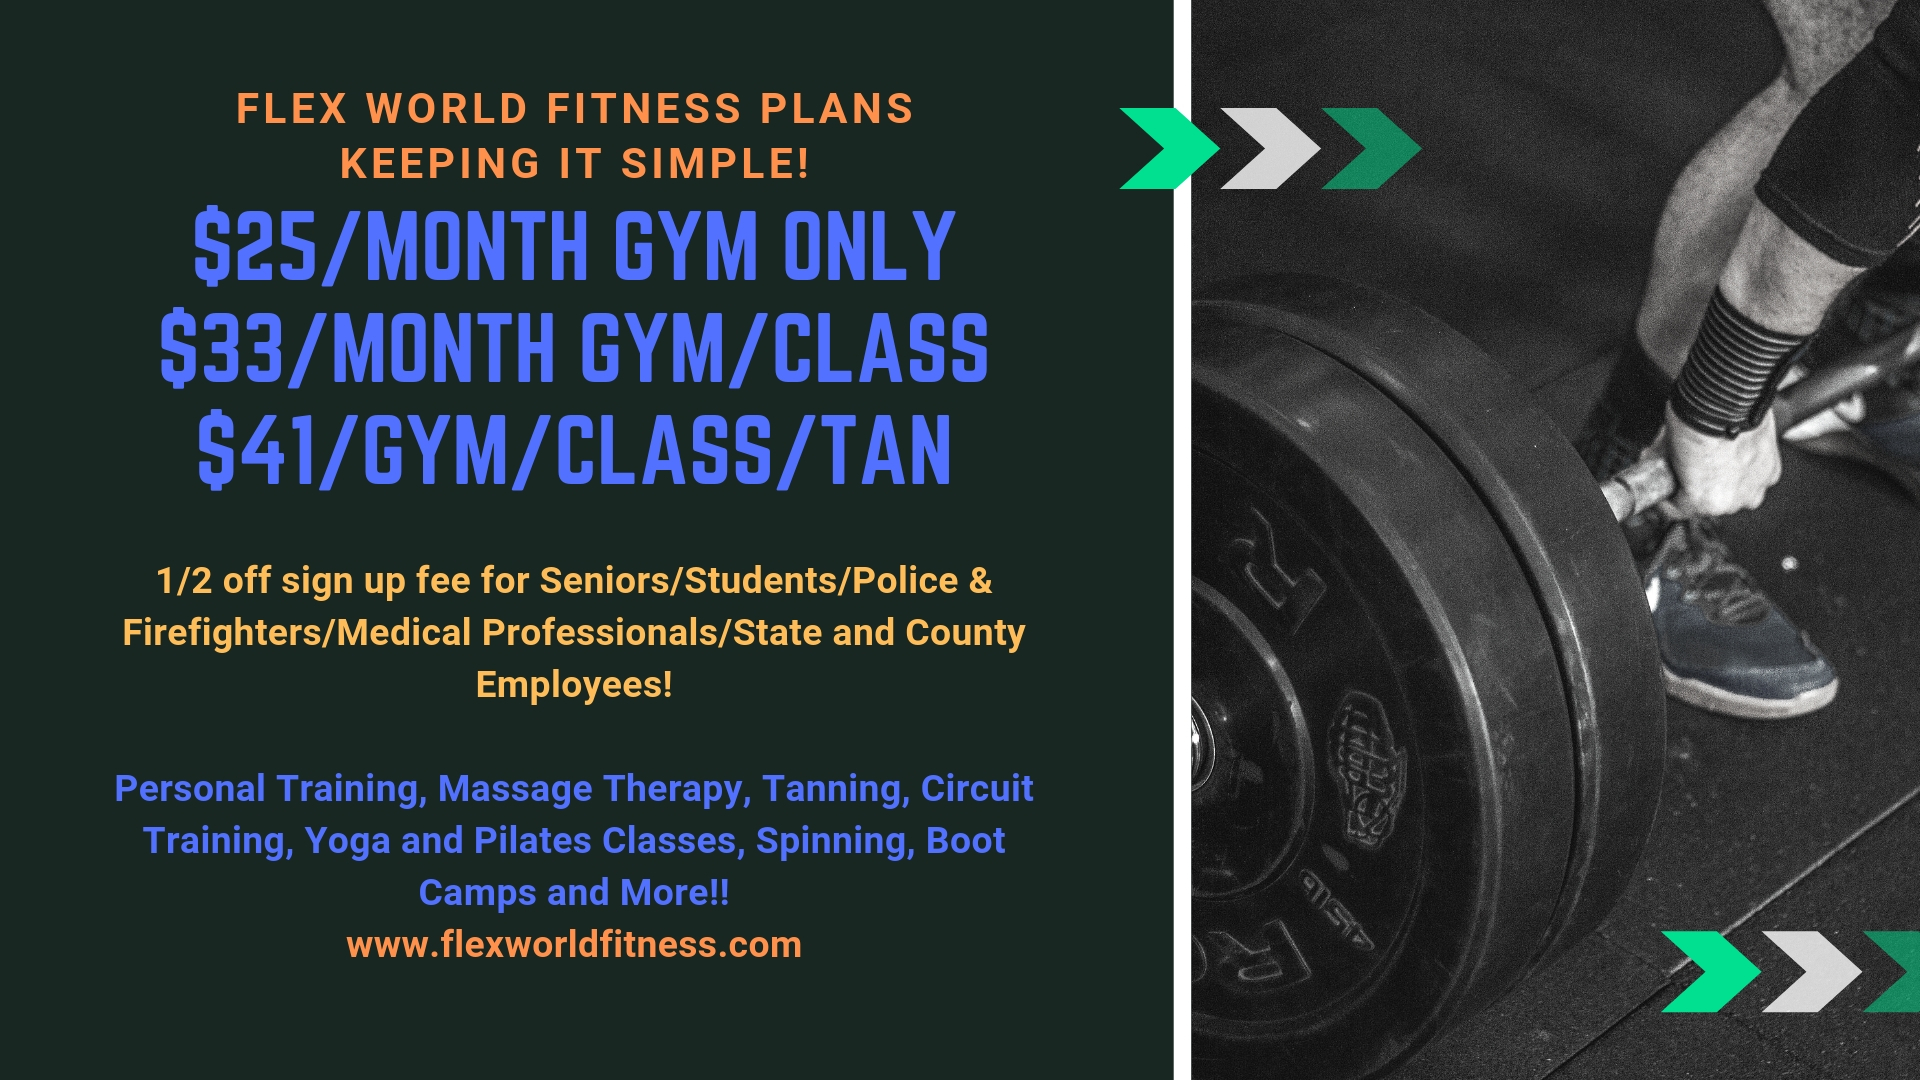 Flex World FitnessFlex World Fitness | Gym | Aerobic Classes